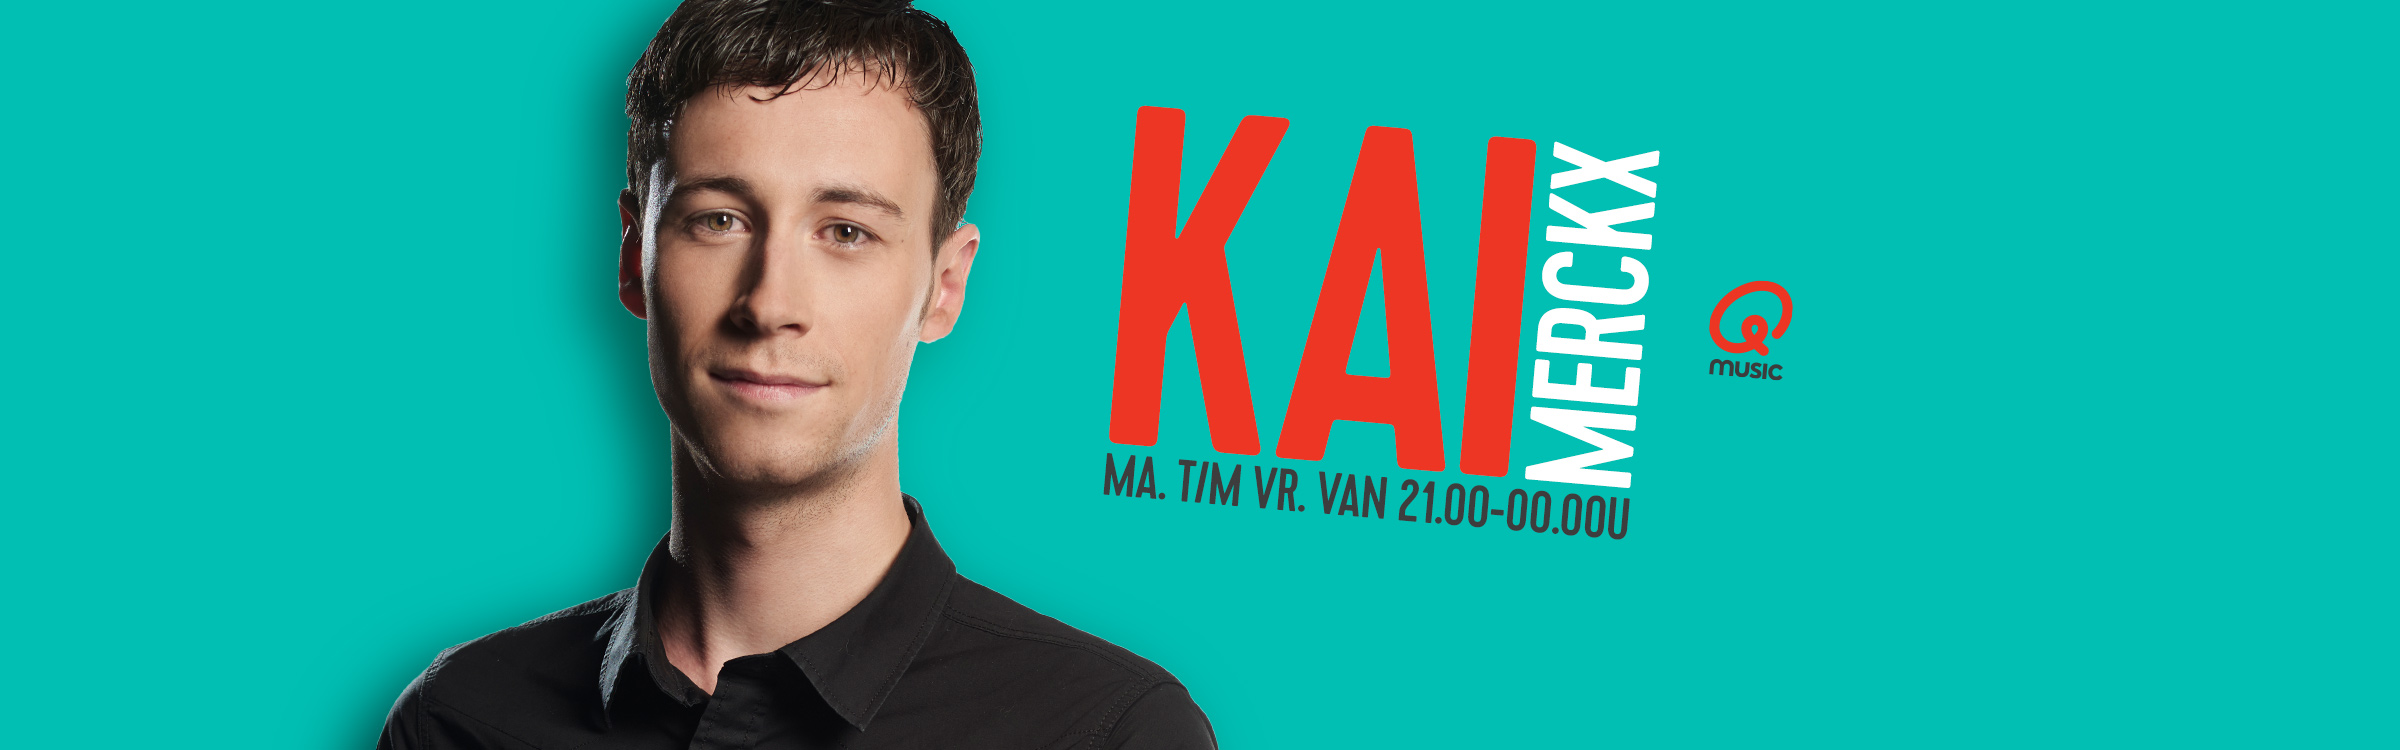 Qmusic actionheader djs kai